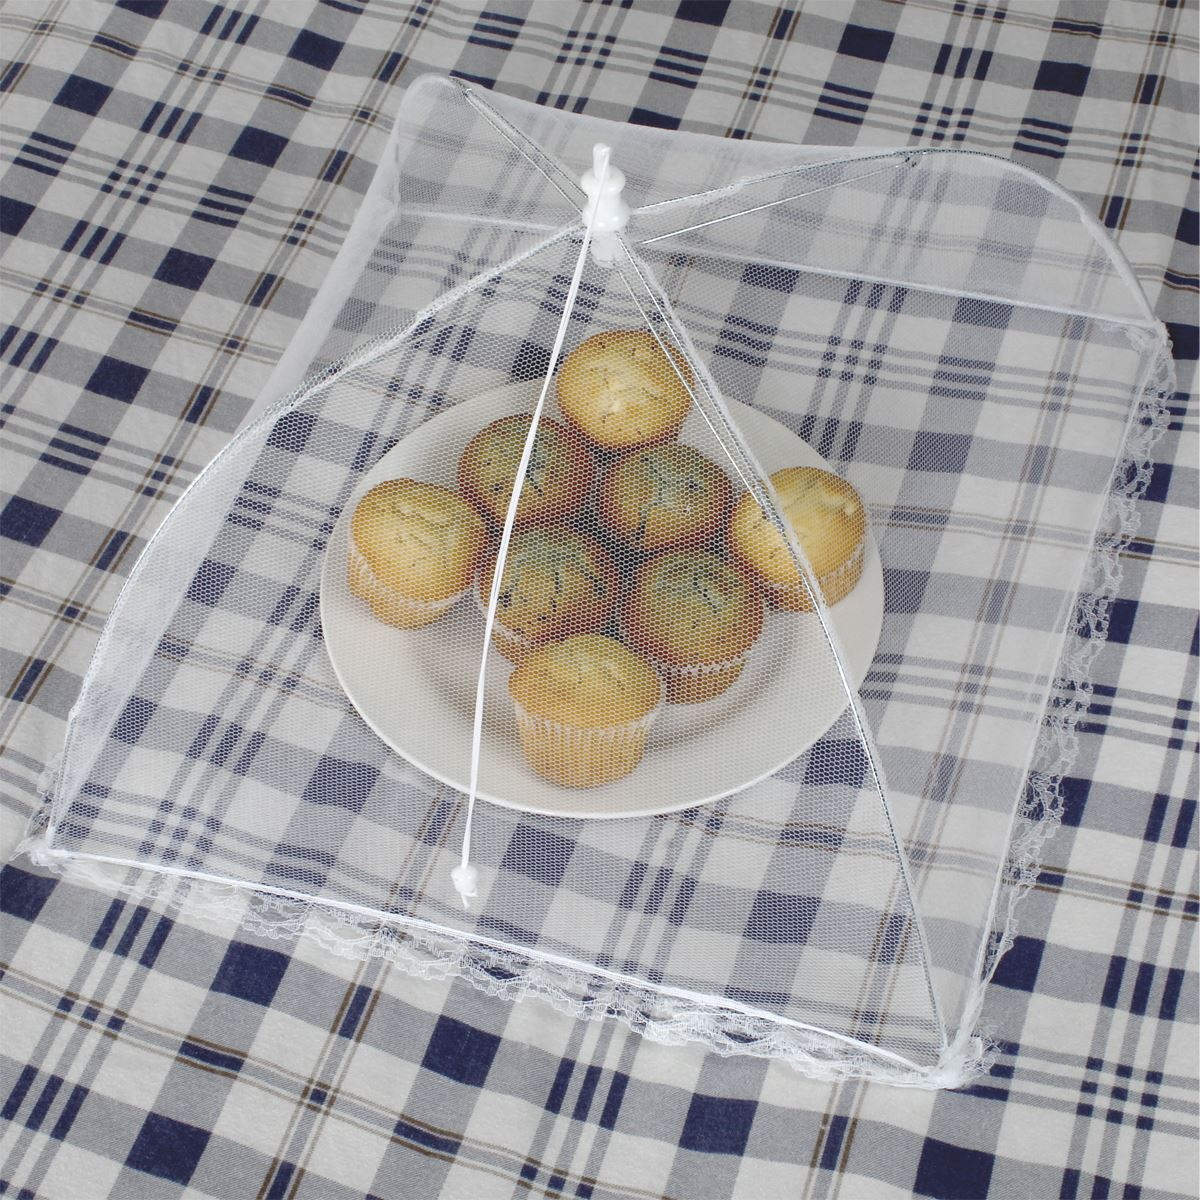 Reusable-Pop-up-Mesh-Screen-Dome-Food-Cover-Tent-Umbrella-Net-BBQ-Table-Fly thumbnail 9